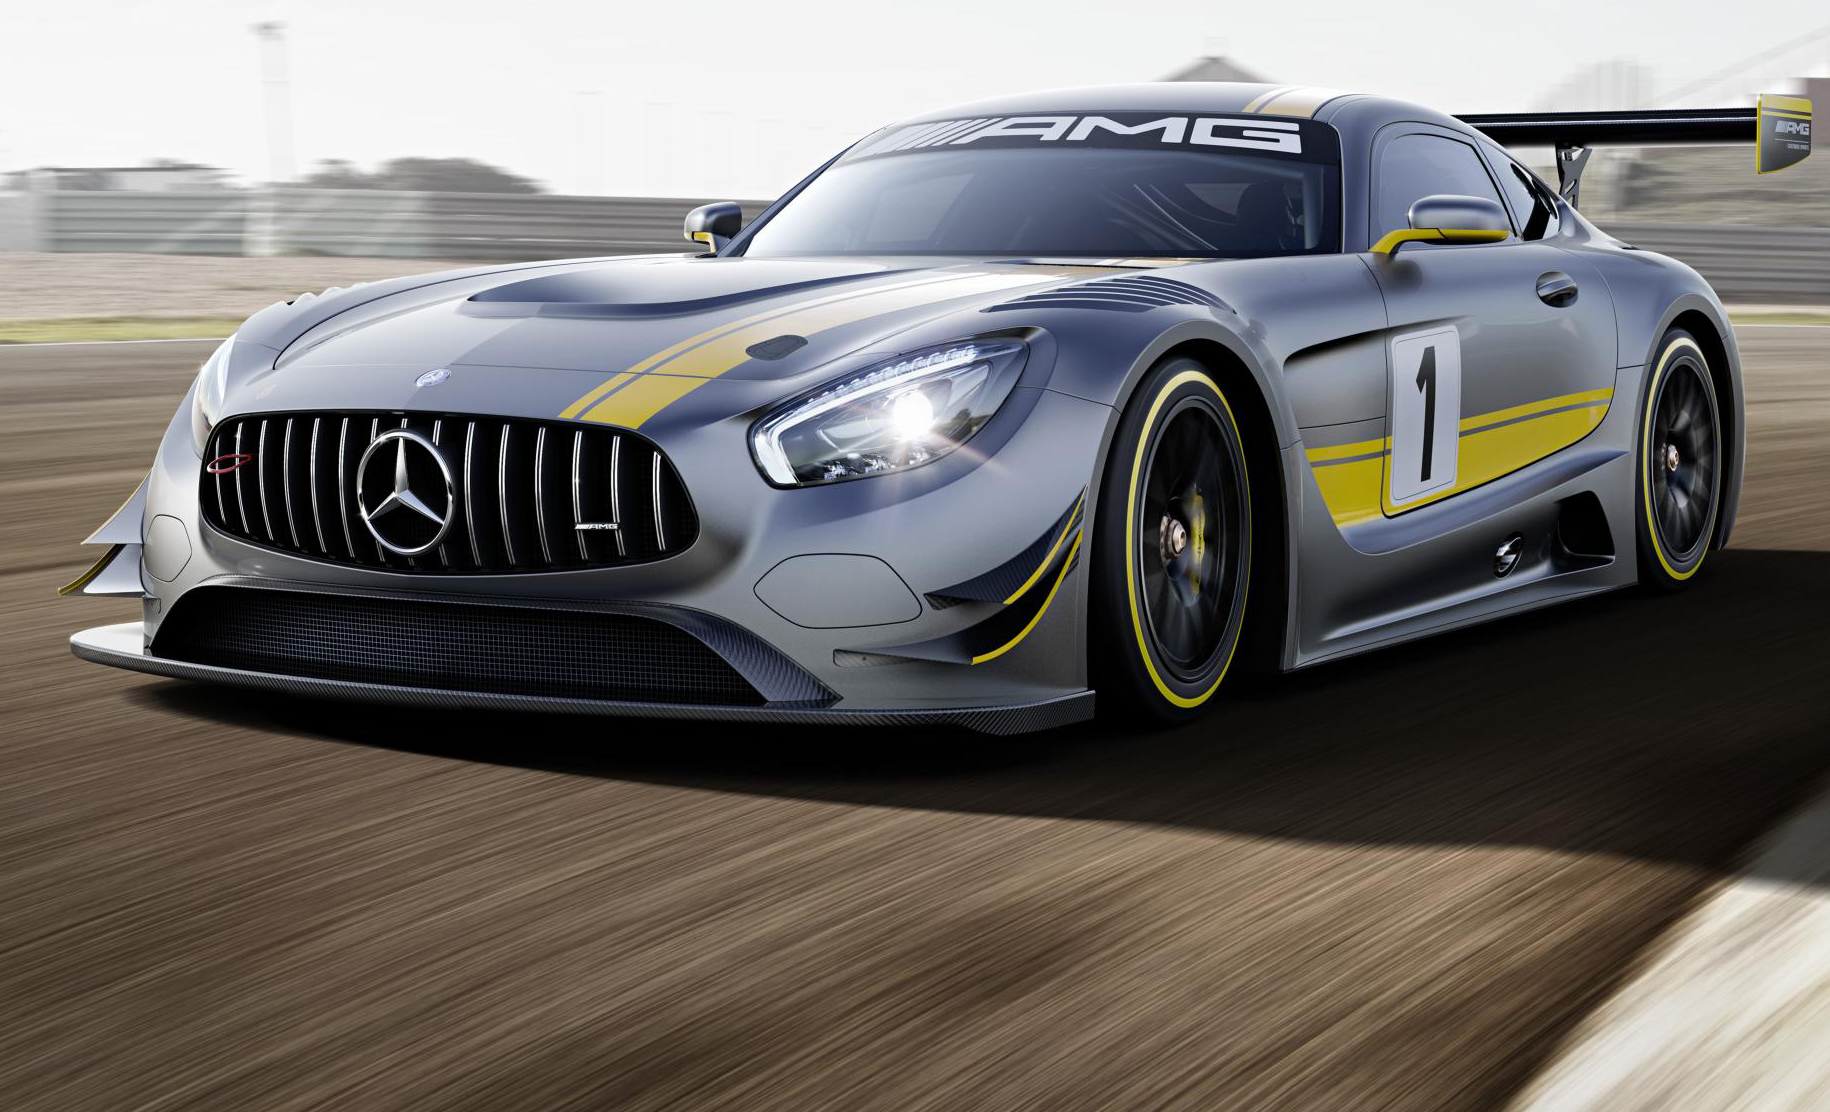 Project cars new mercedes amg gt3 previews virtualr sim racing - Mercedes Amg Gt3 Coming To Raceroom